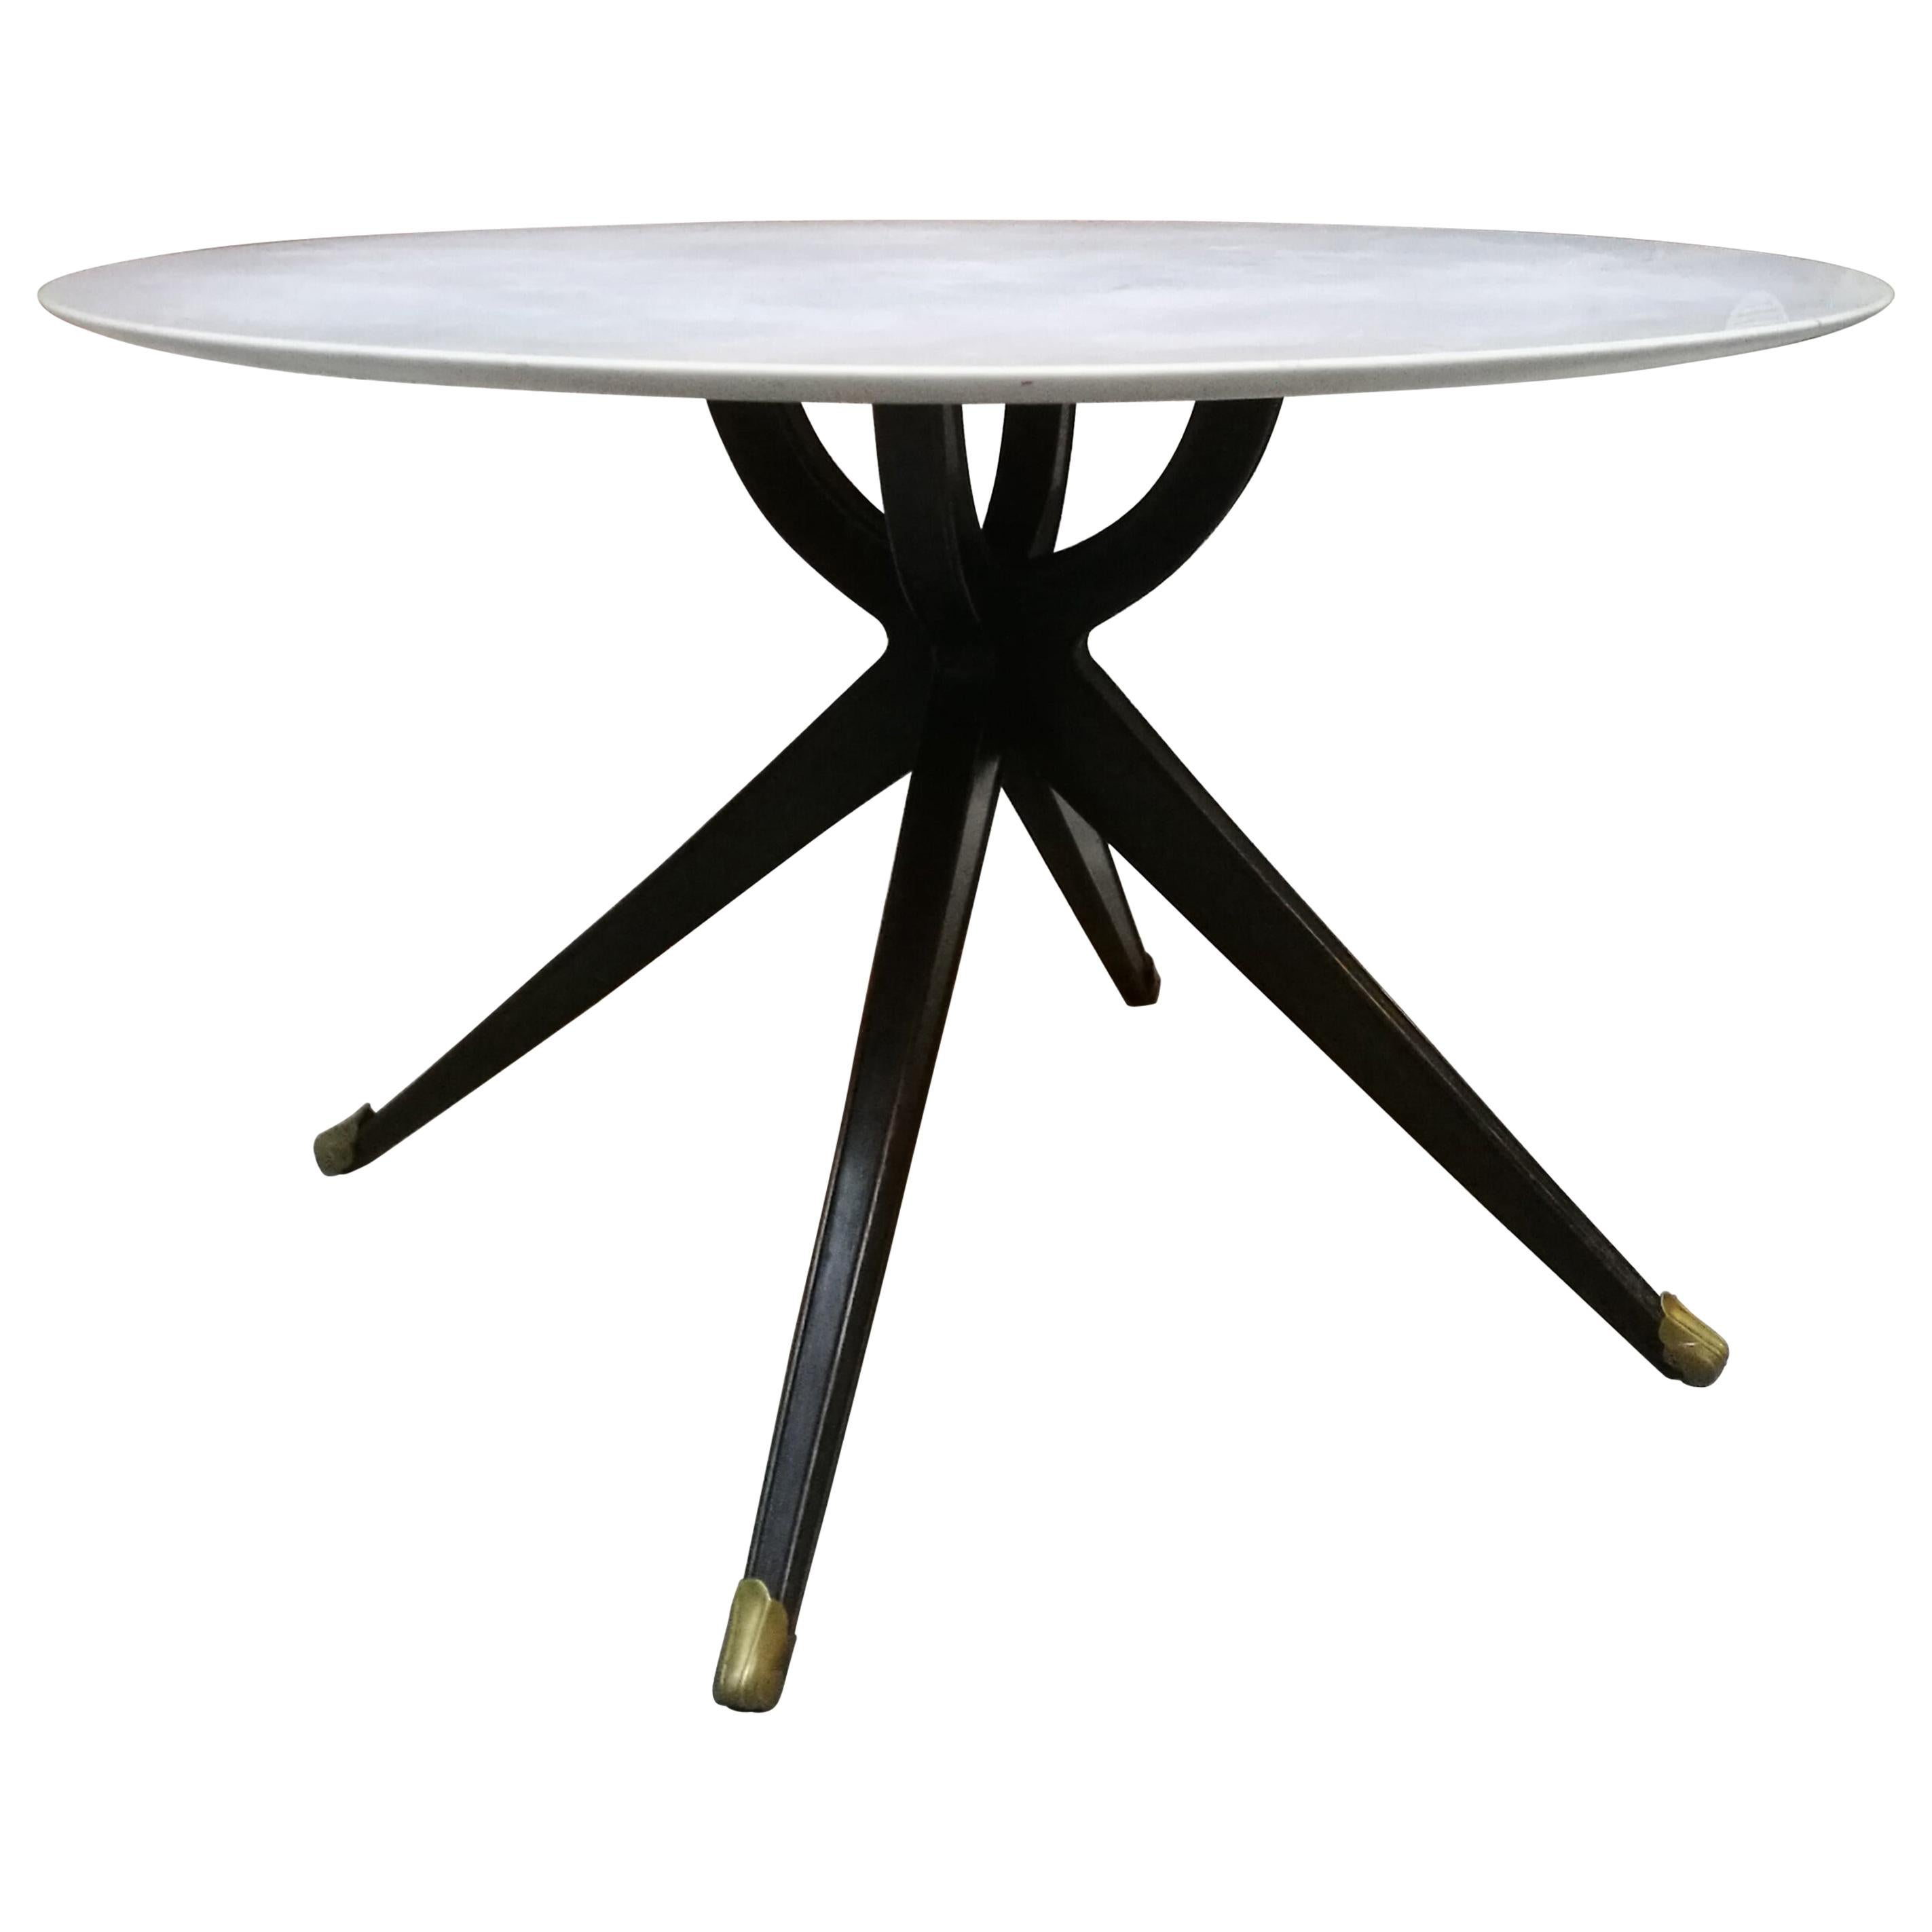 Italian Wood and White Marble Dining Table, 1950s